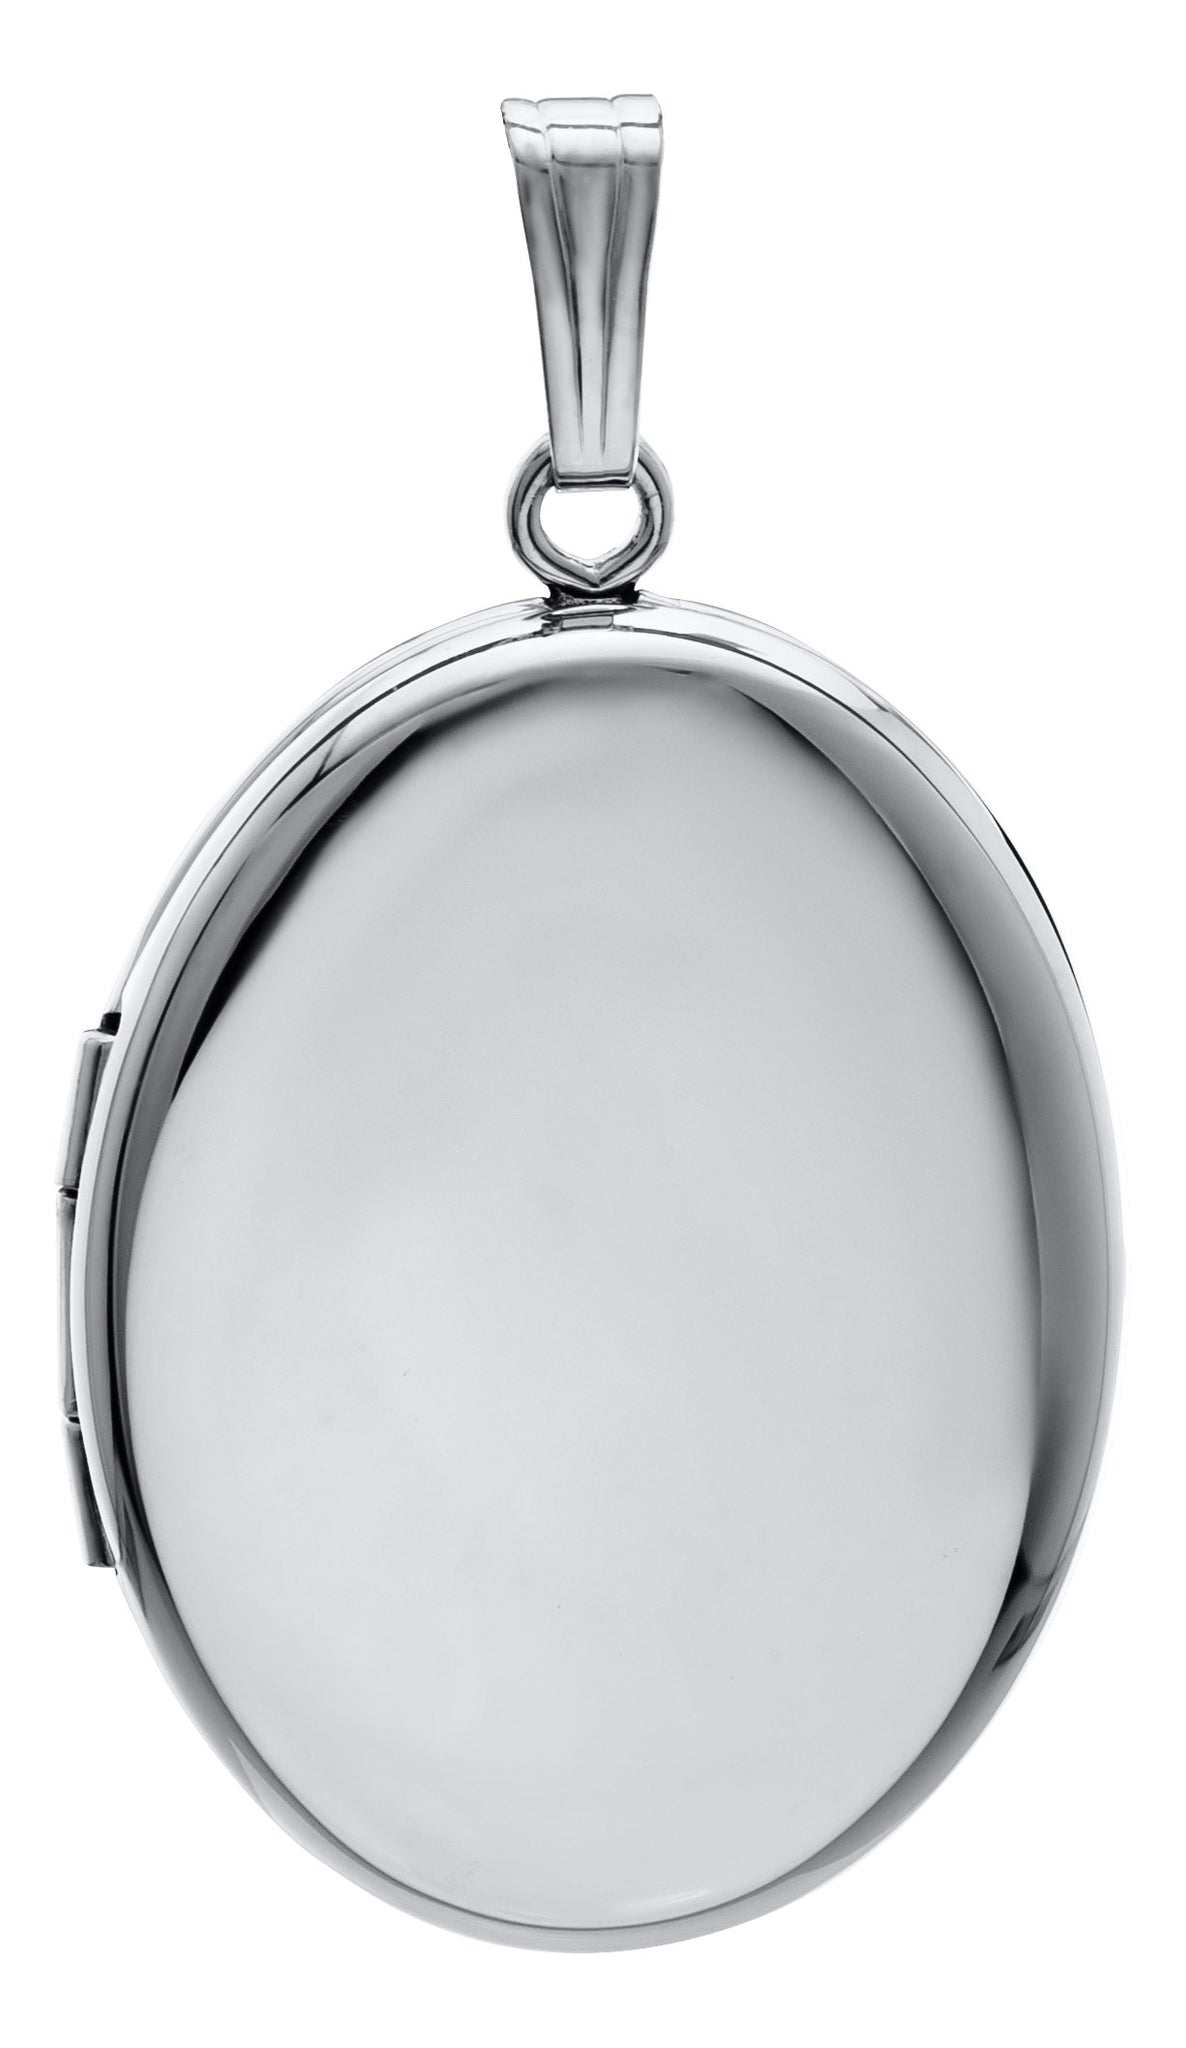 An adult-size plain polished sterling silver small oval locket on a Rolo chain necklace.  Locket: 25 x 20mm  Chain length: 20""